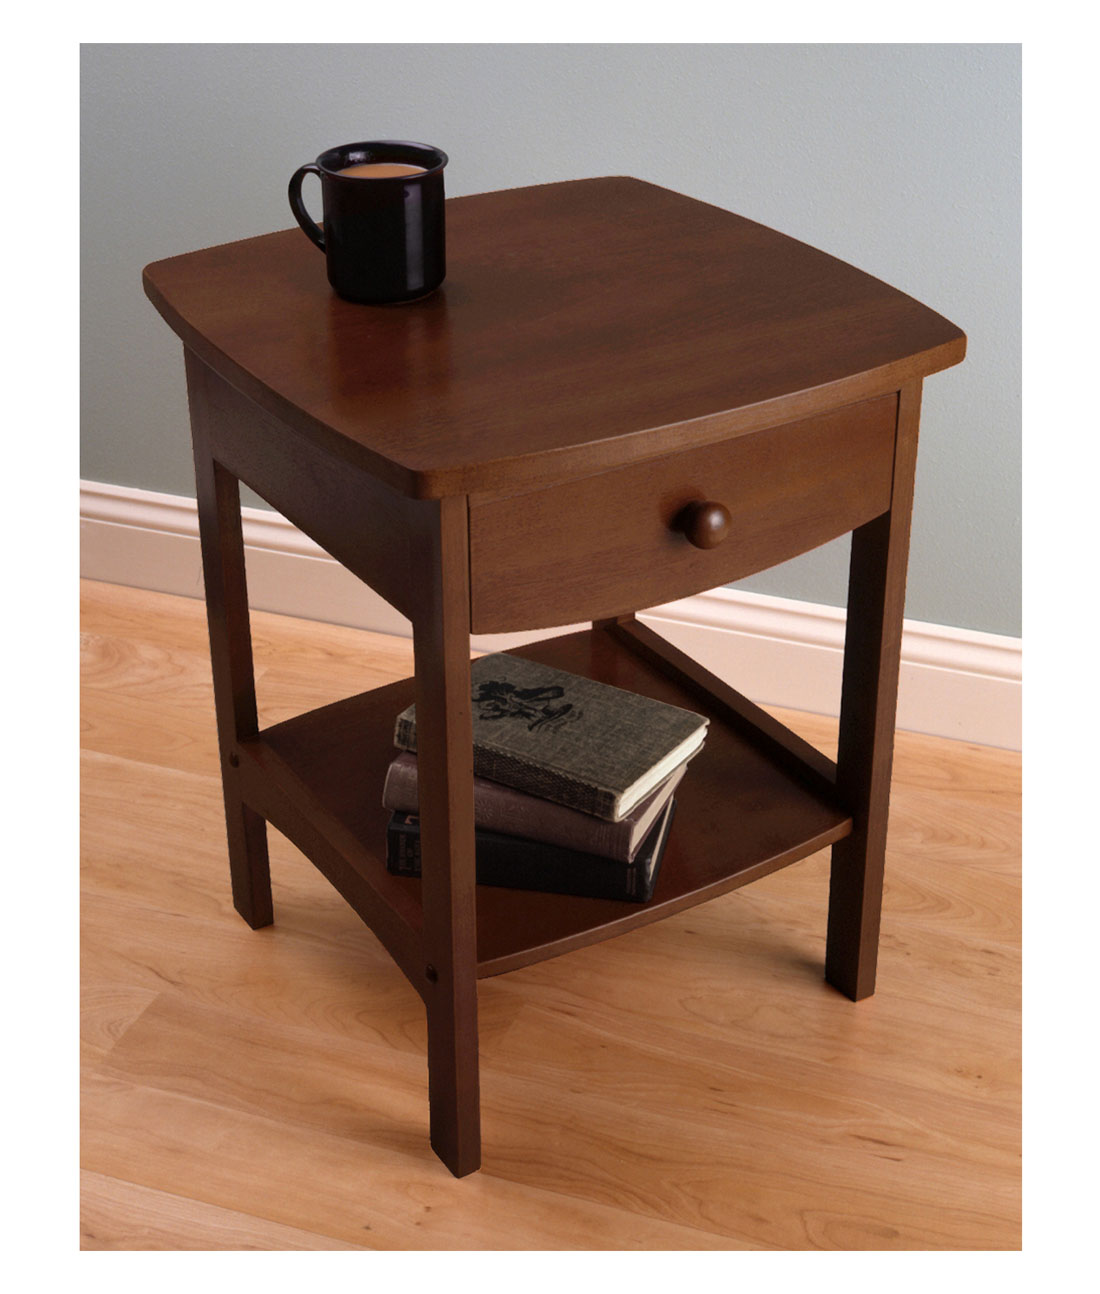 winsome wood claire accent table anitque walnut finish household timmy black corner battery operated desk lamp short with drawers cherry coffee decorative powered lamps cool end